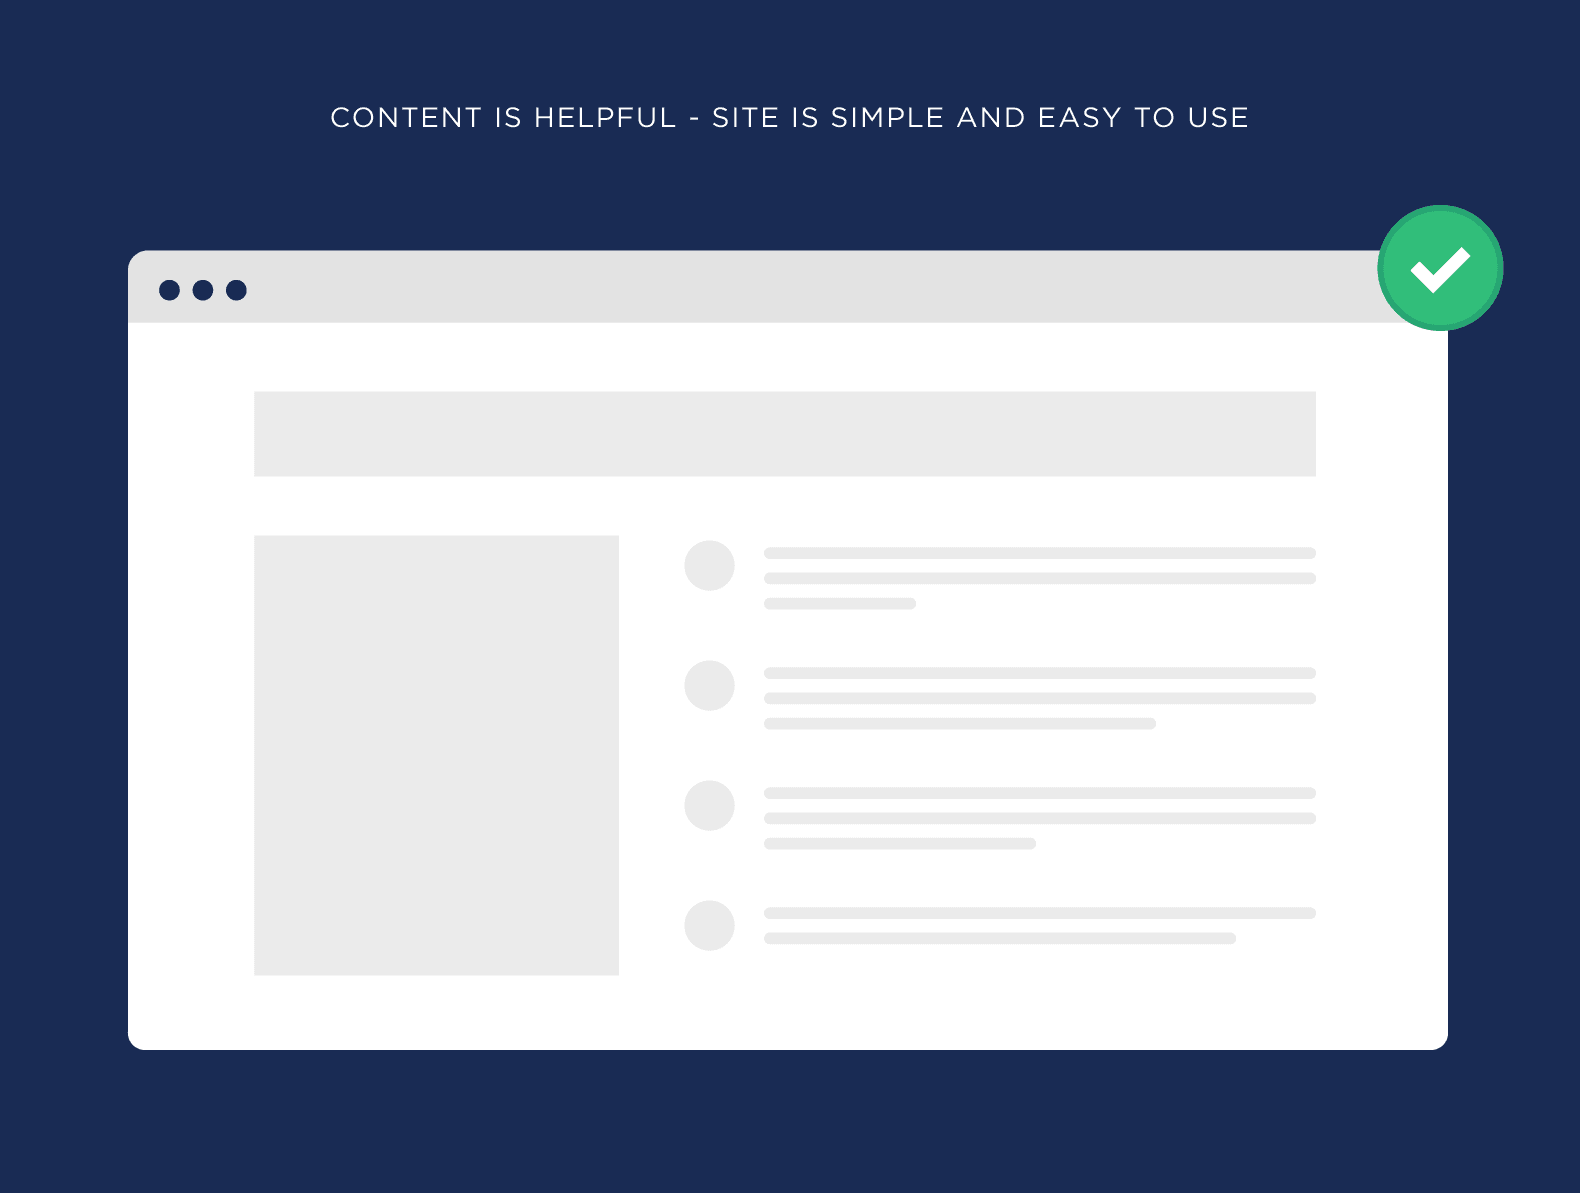 Content is helpful – Site is simple and easy to use